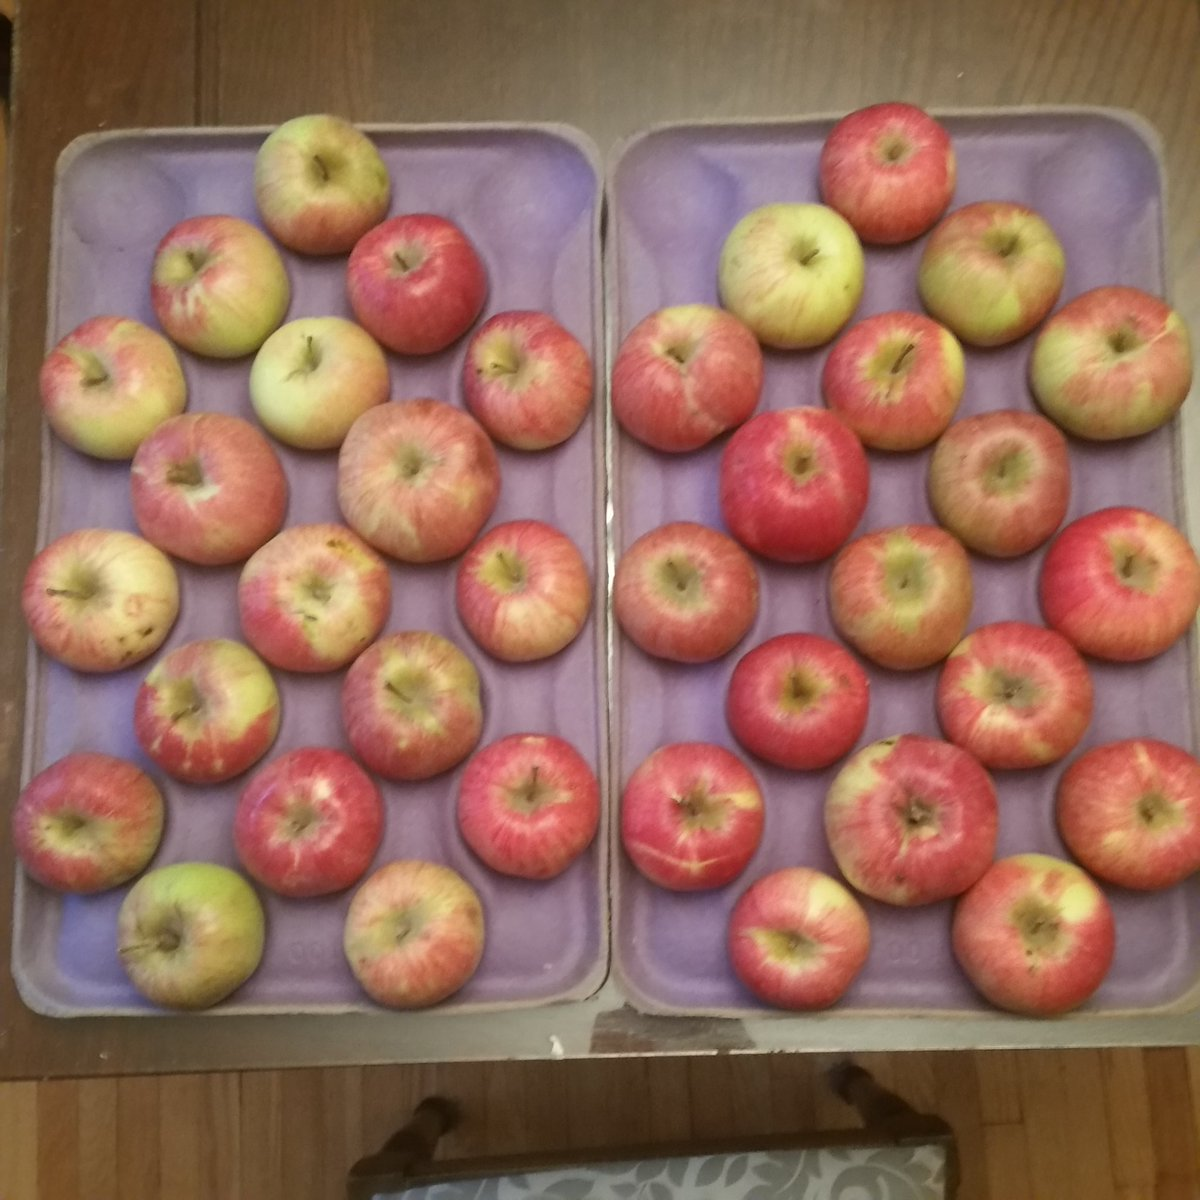 test Twitter Media - RT @Trianglemancsd: How many apples? How did you count? https://t.co/0KpcIf4YiG